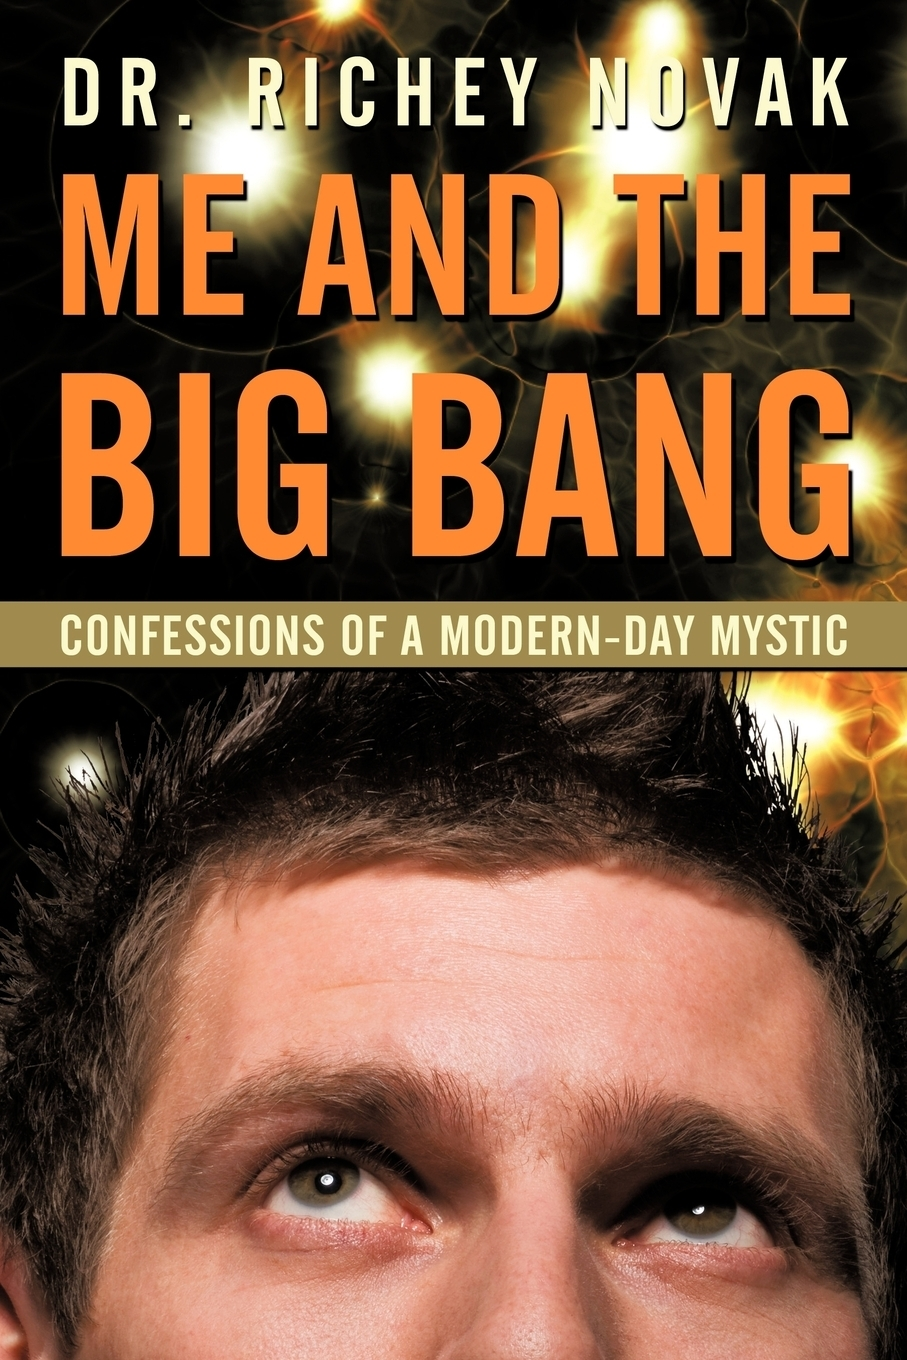 Richey Novak. Me and the Big Bang. Confessions of a Modern-Day Mystic